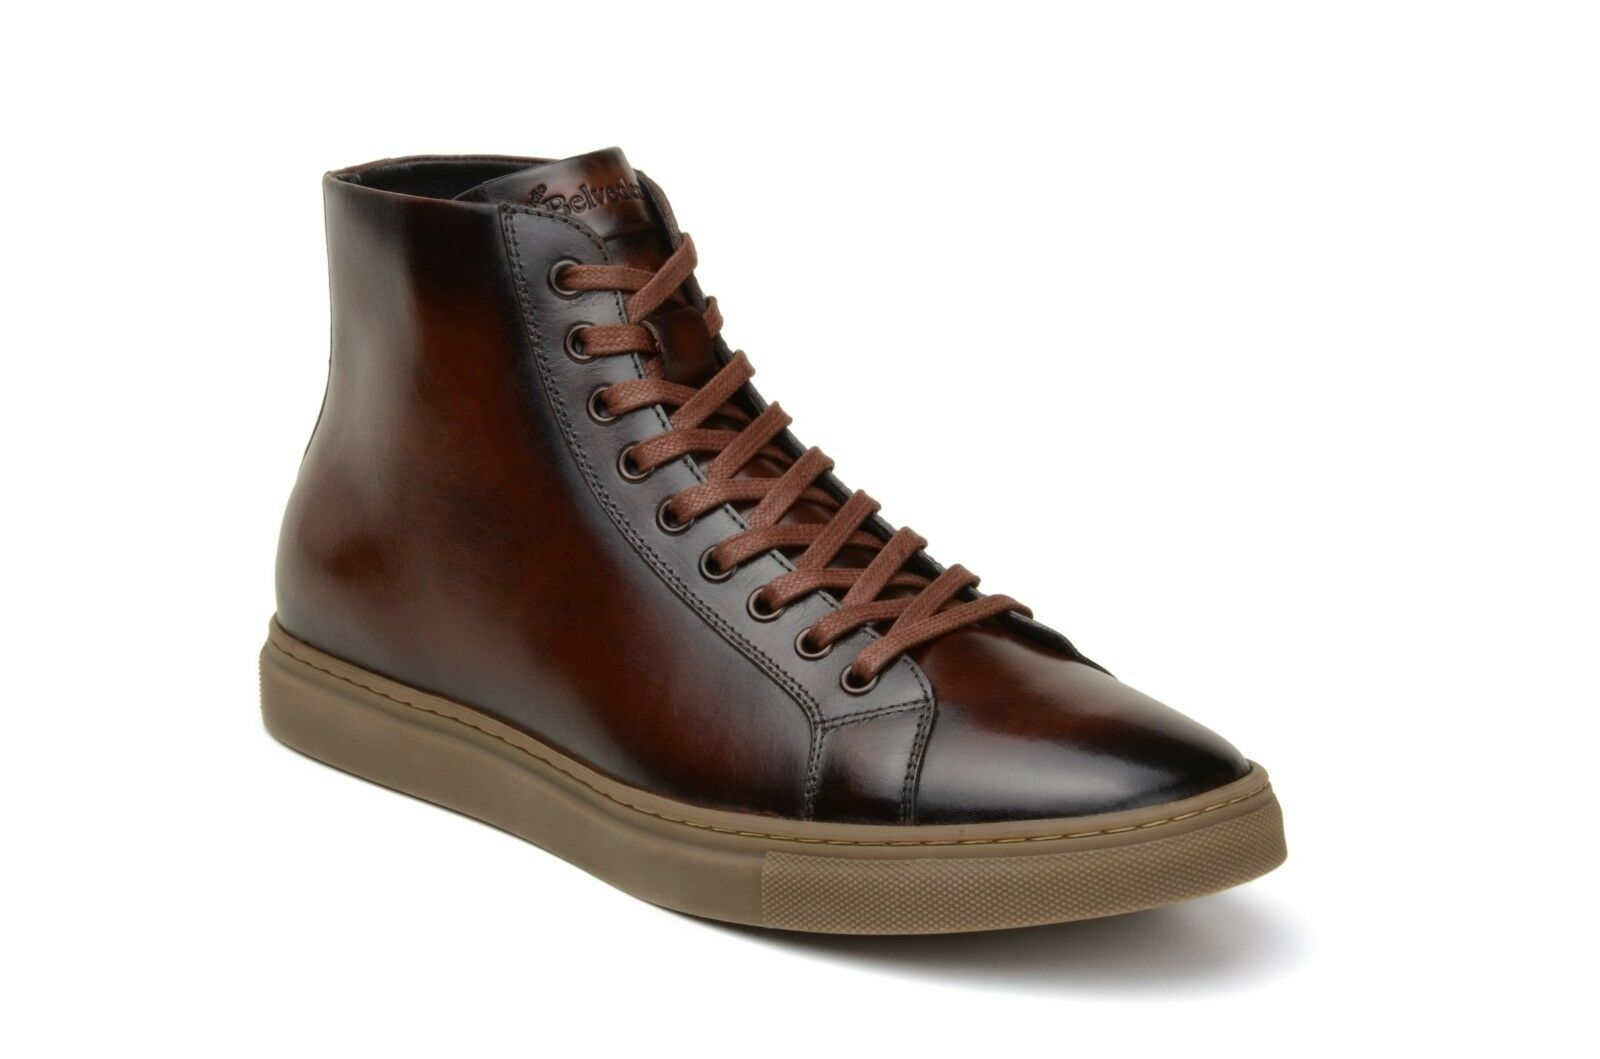 Belvedere New Exotic TurnschuheStiefel David Antique Cognac Leather Sporty High-top